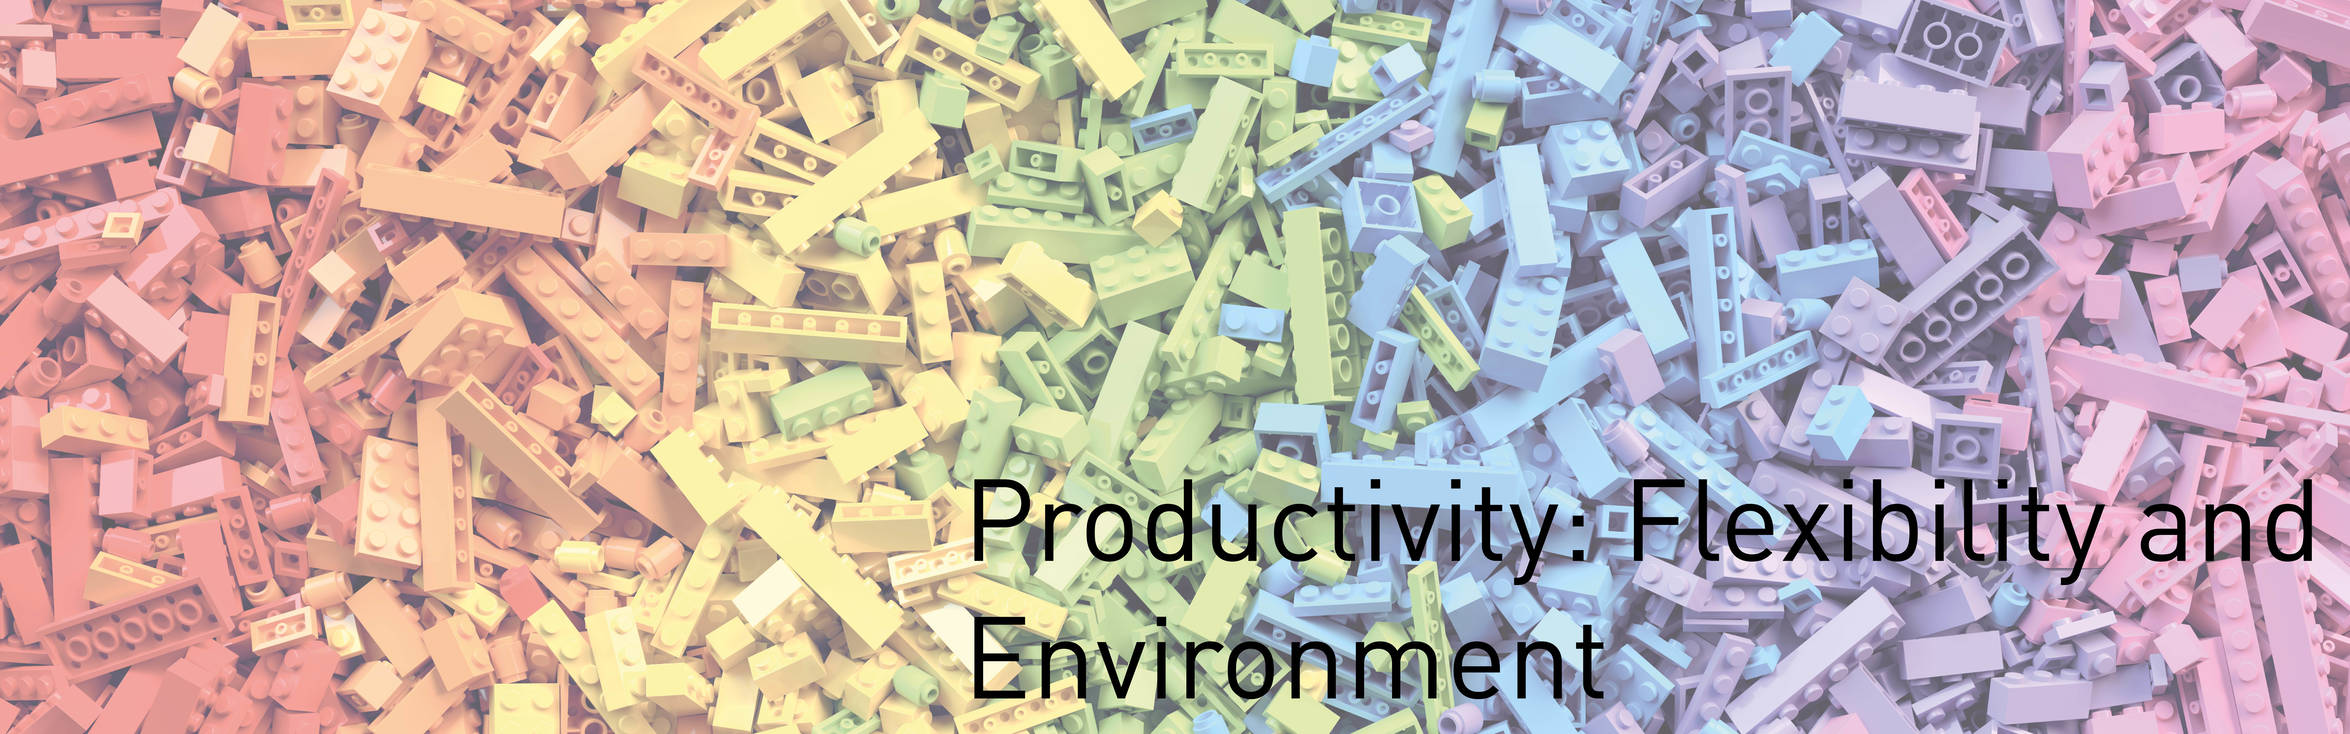 Productivity: Flexibility and Environment